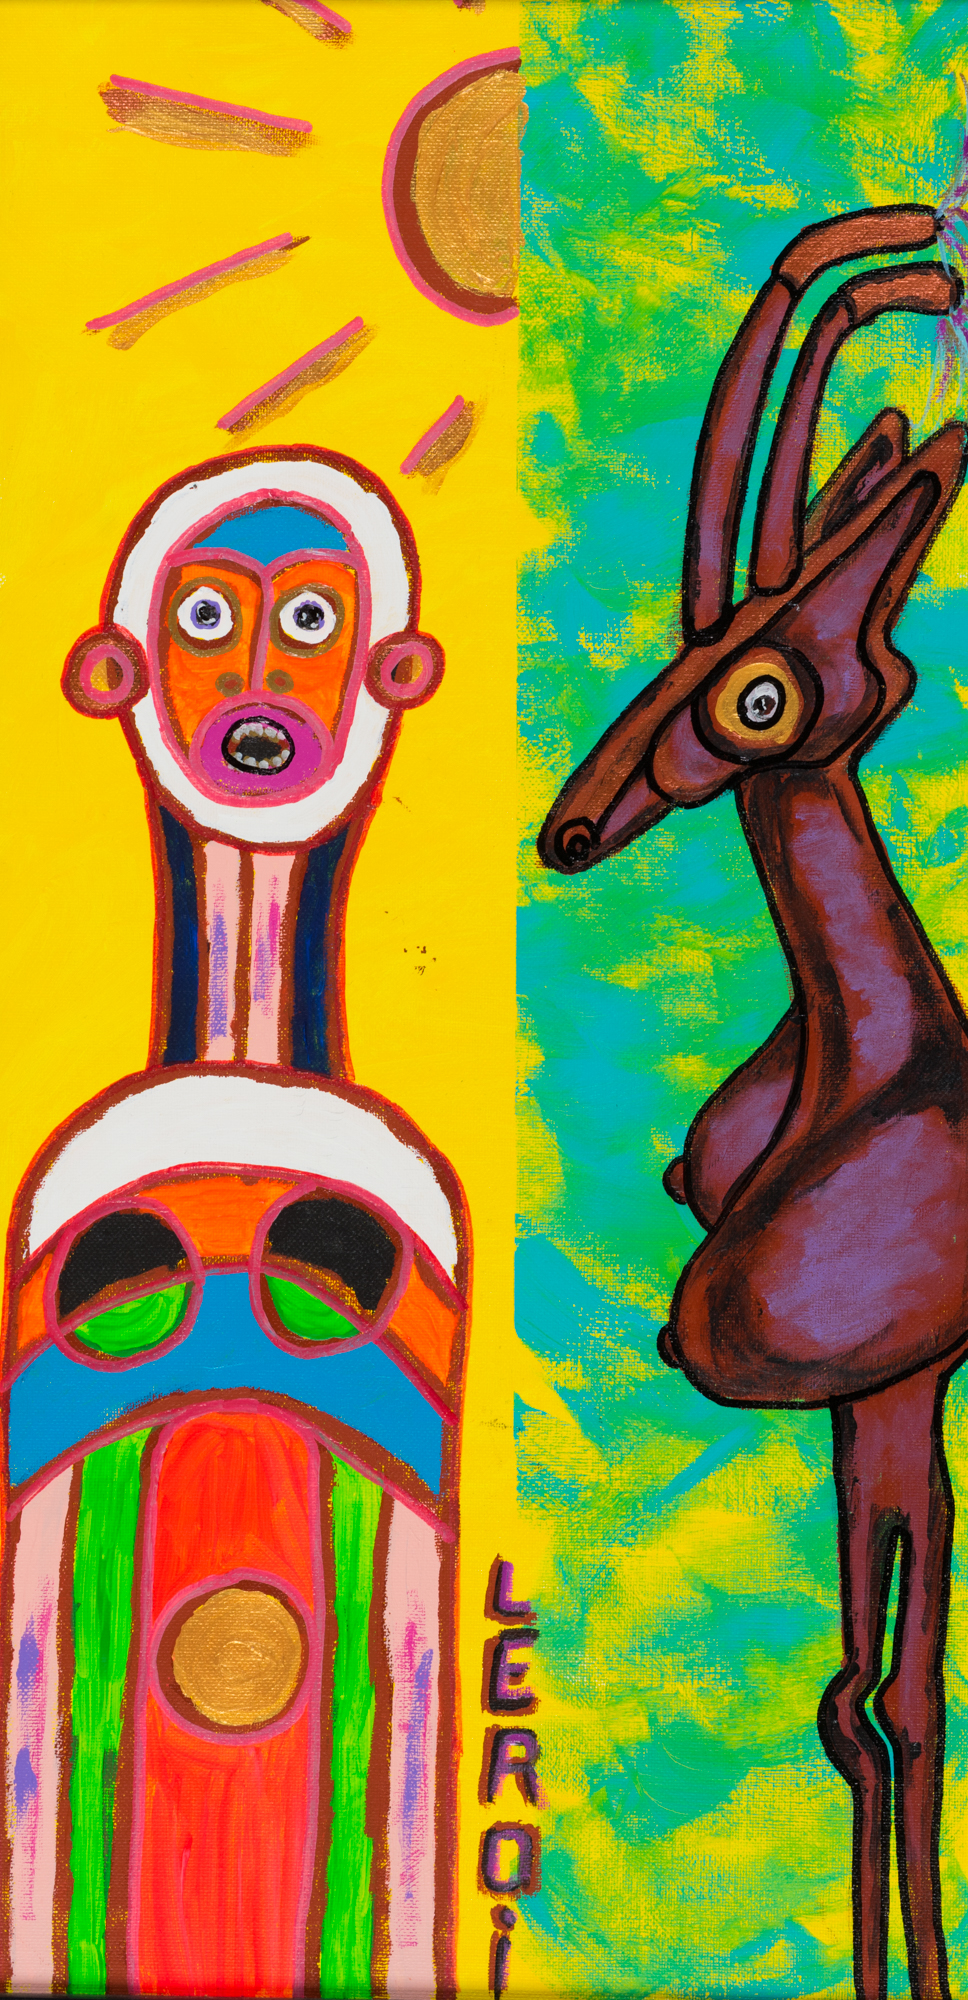 _14_LEROI_Colored Person and Animal_2010_Oil and acrylic on board_24x12 inches_$2,500.jpg